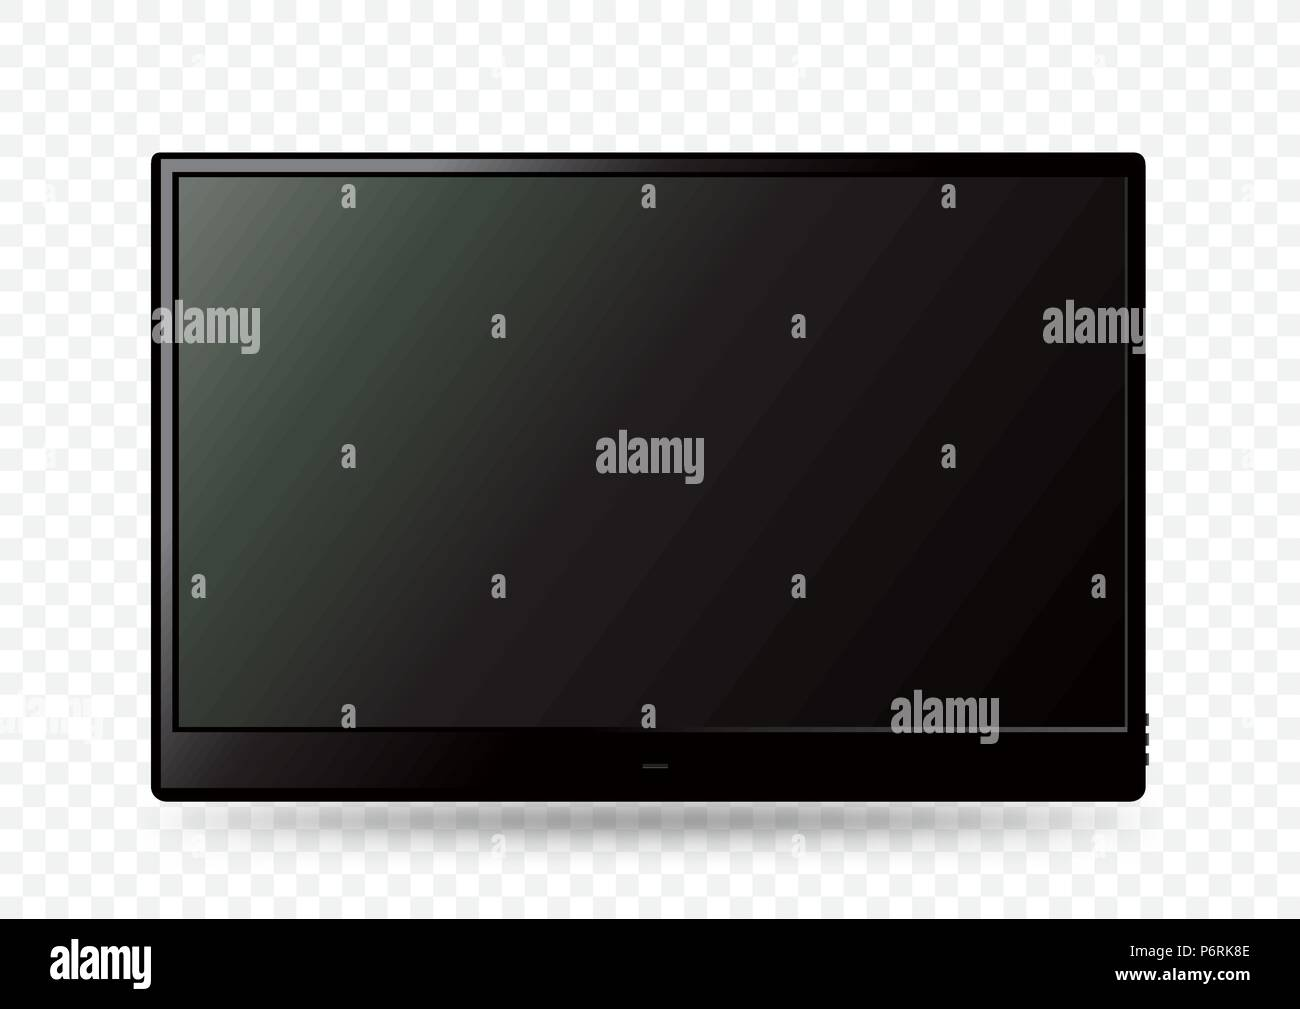 71f063f6a2d Big black wall TV icon template with shadow on white transparent background.  Television LED display screen. Flat media technology eletronic equipment.